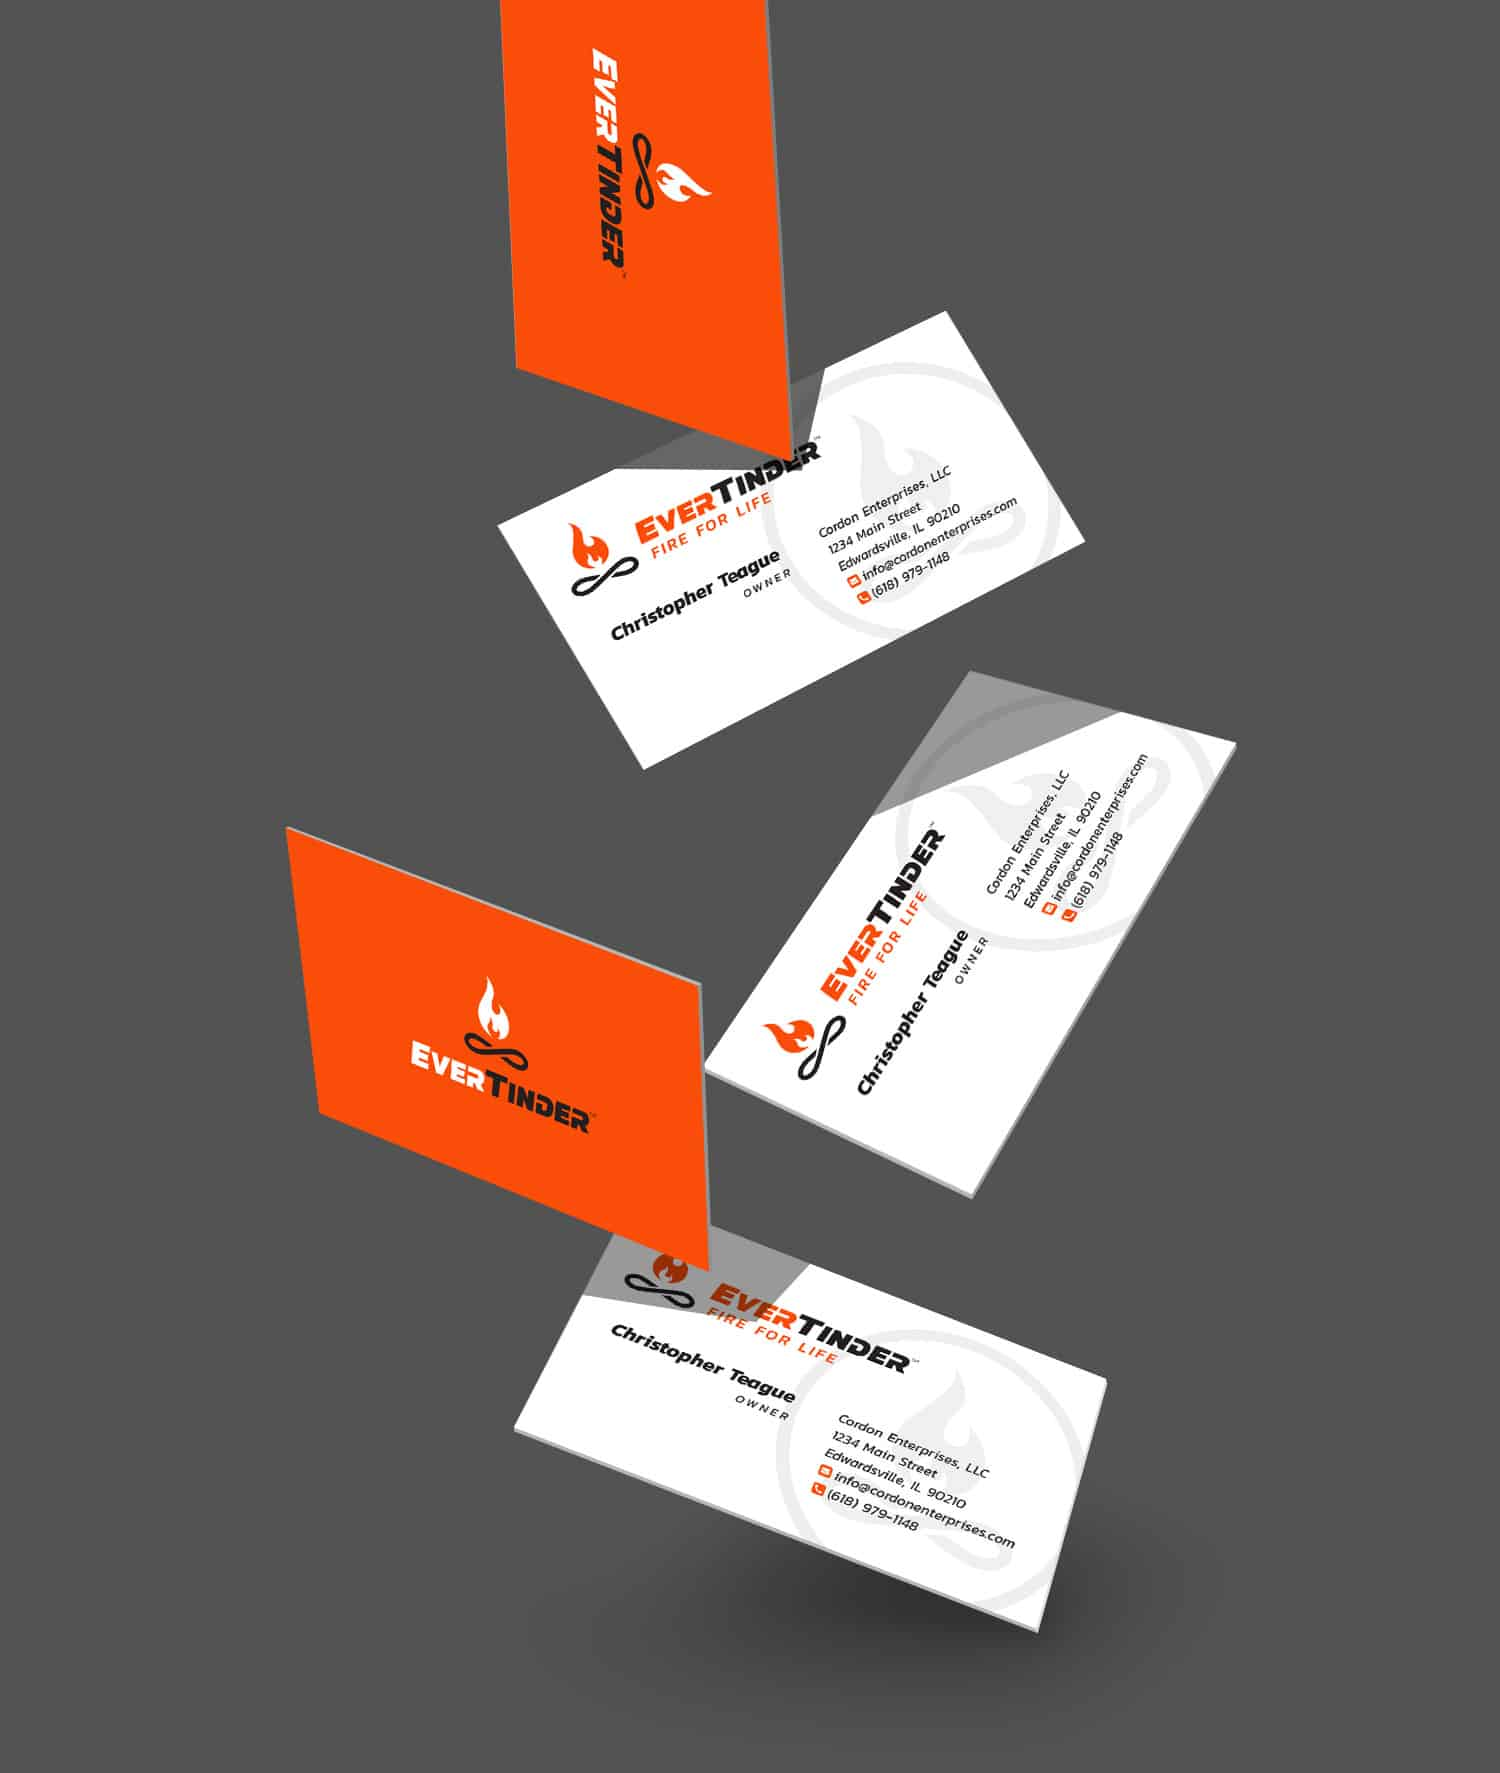 EverTinder business cards 2